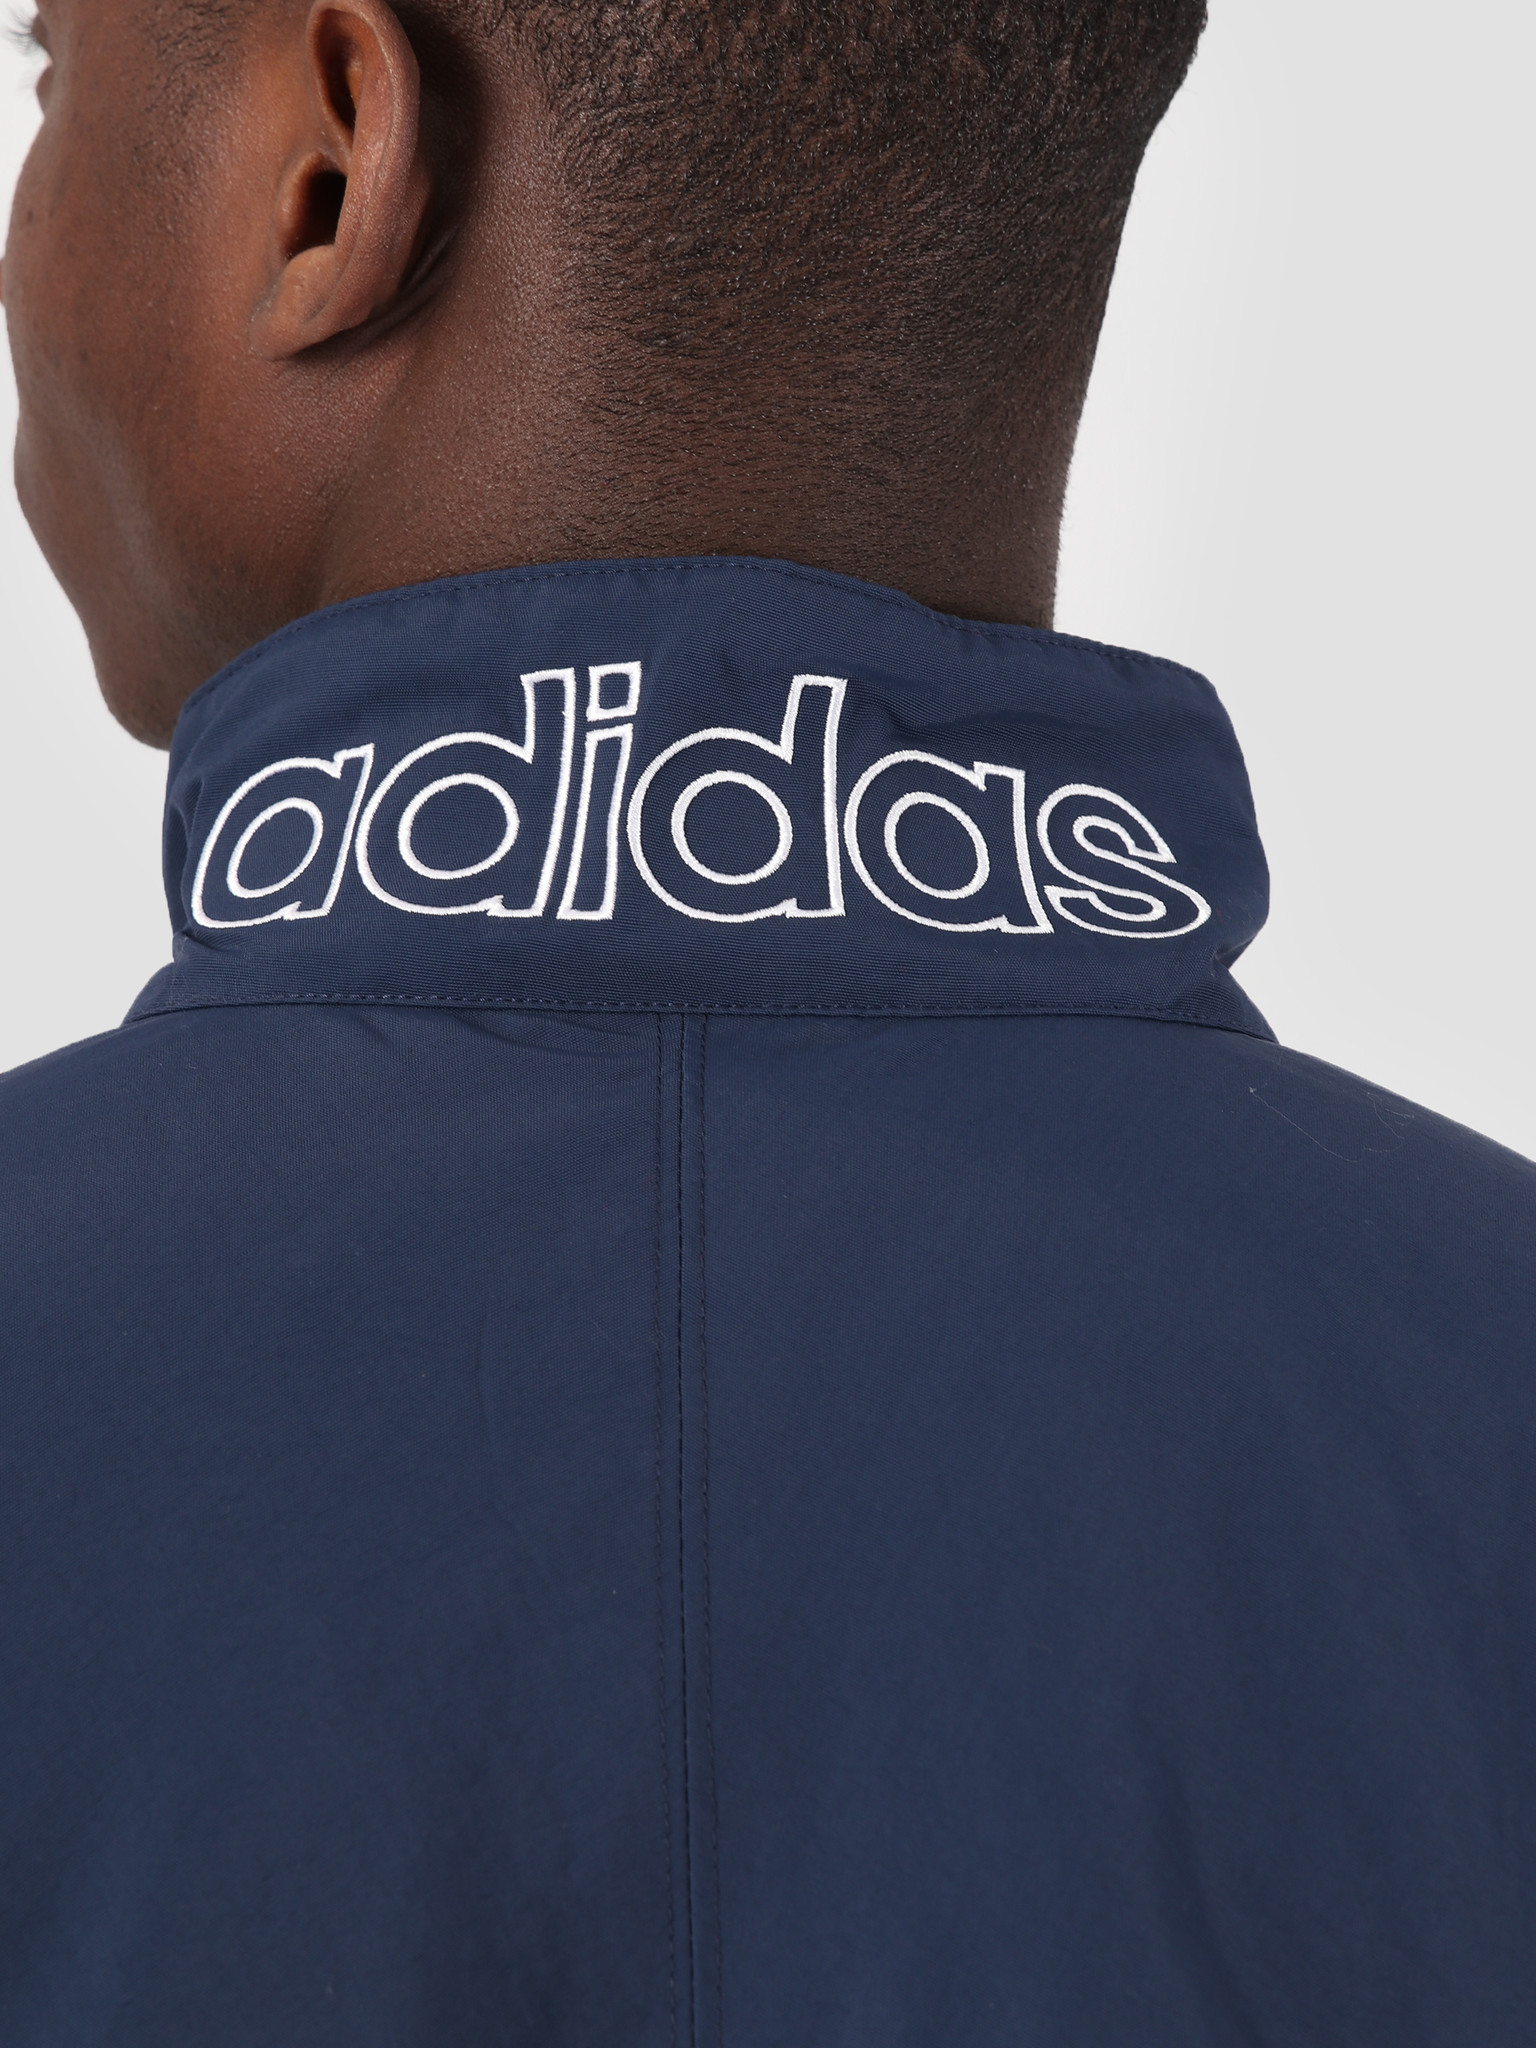 adidas adidas Blocked Warm Up Raw Navy DV3117